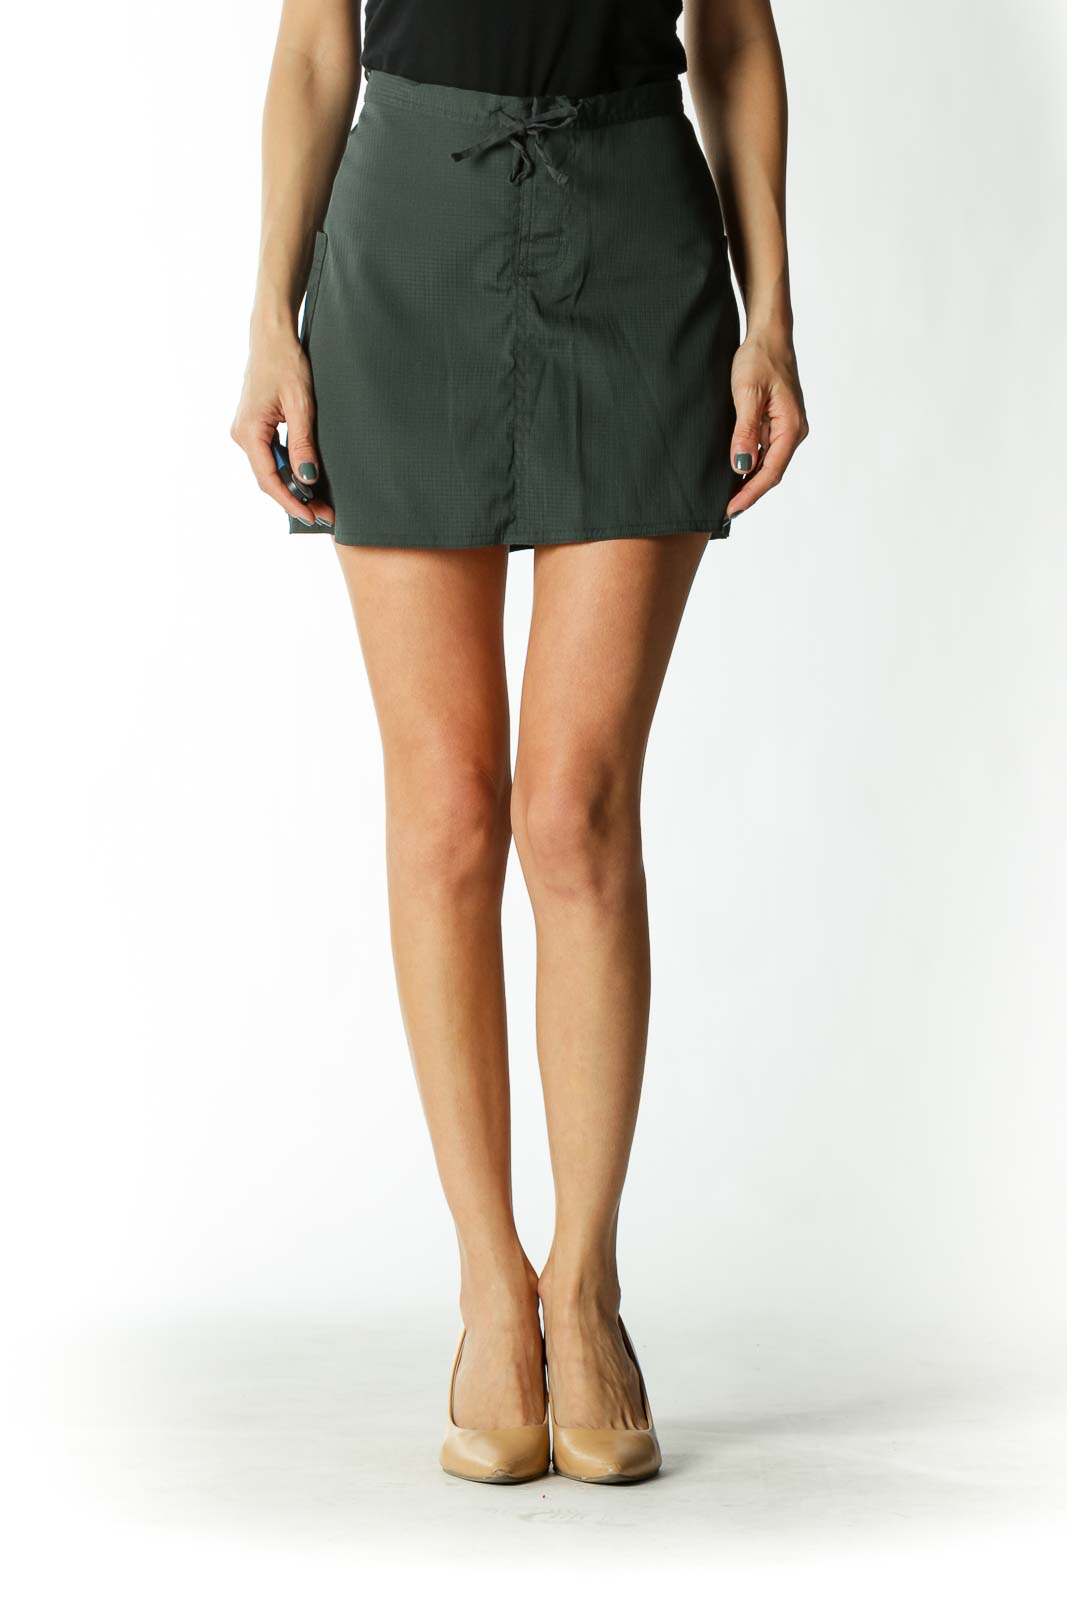 Green Skirt with Shorts